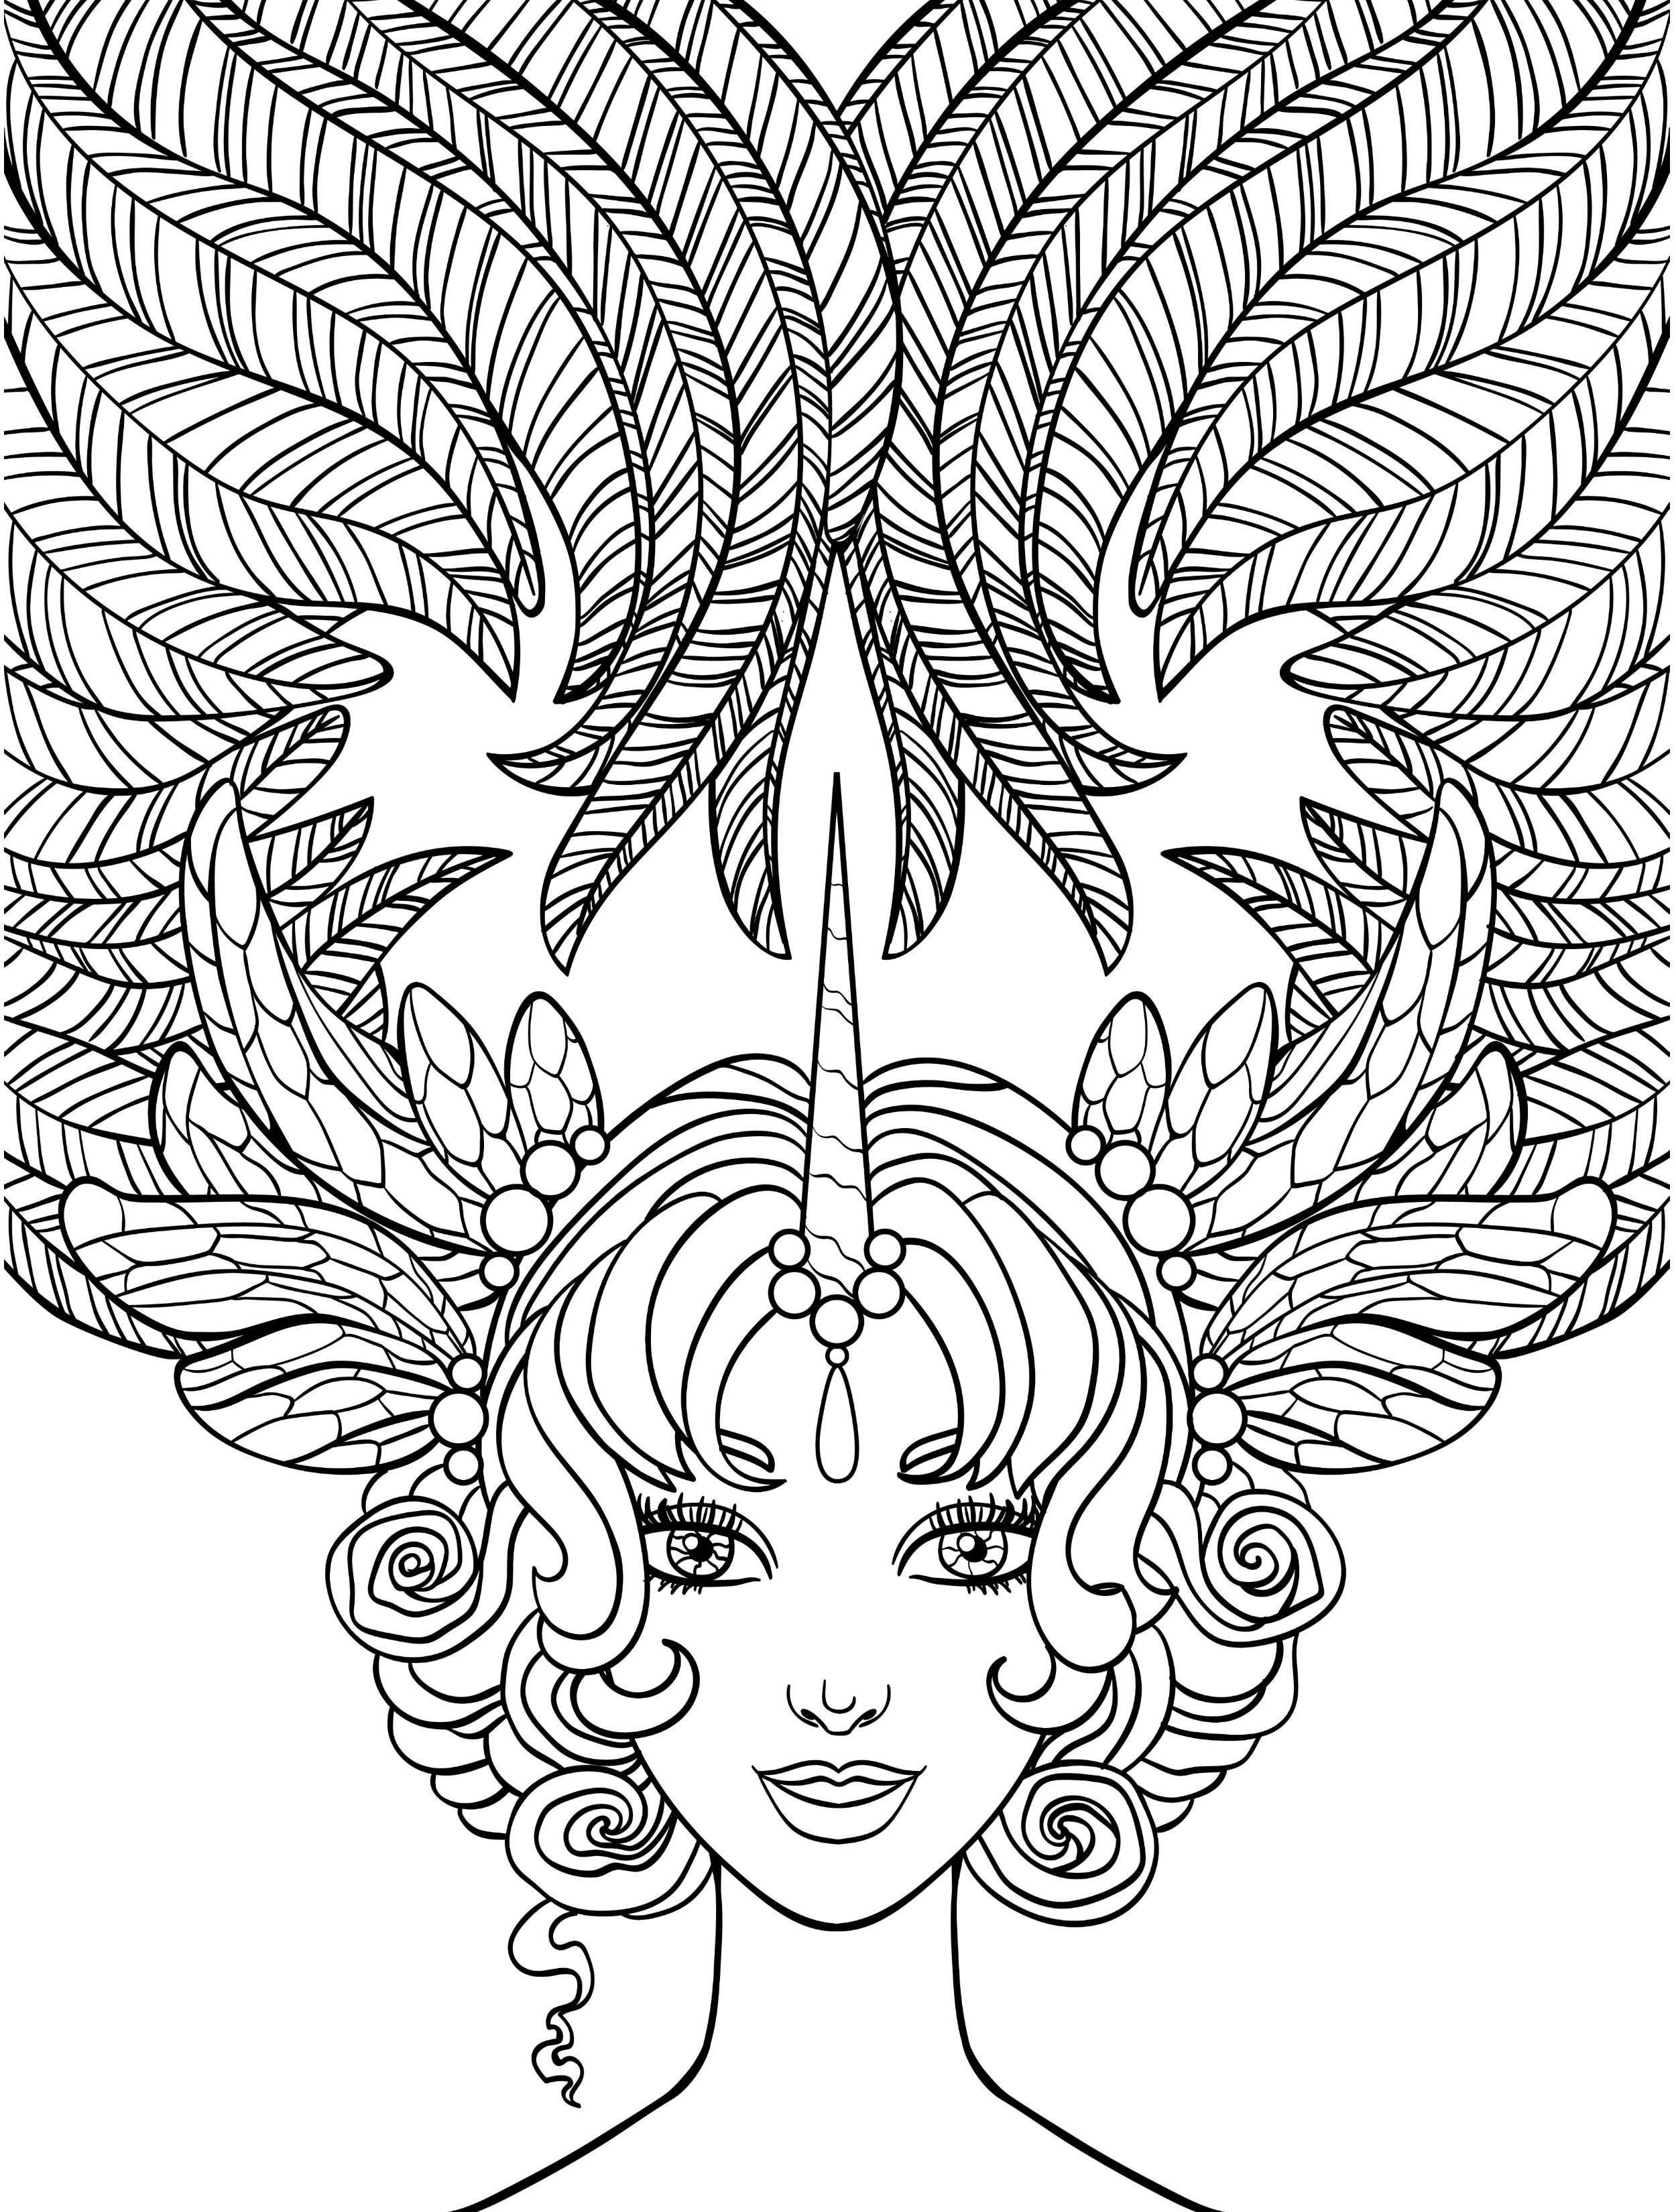 Crazy Hair Lady Coloring Page For Adults Free Download Coloring